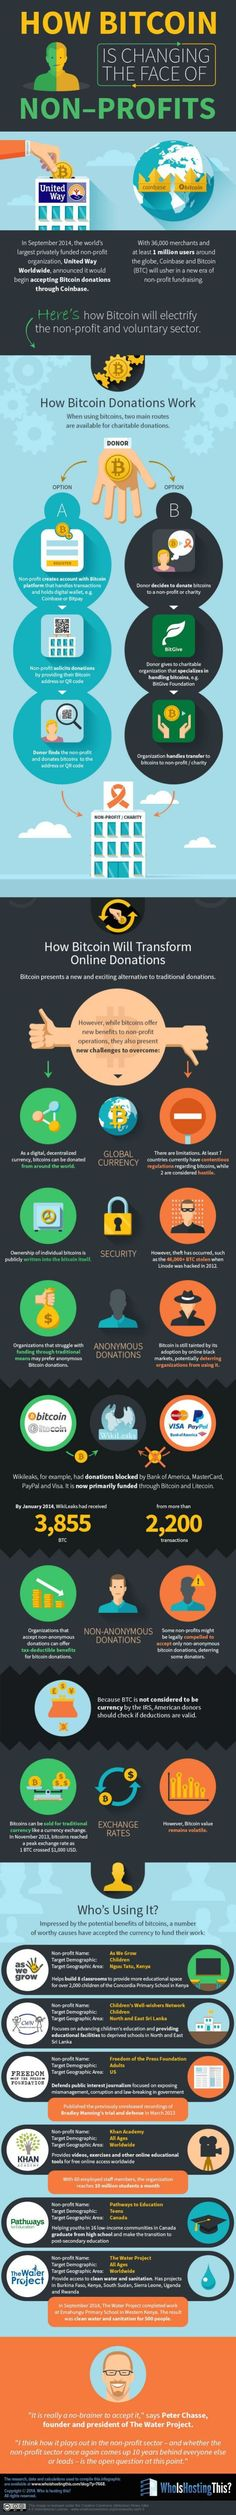 fundraising infographic : How Bitcoin is Changing the Face of Non-Profits #infographic #Bitcoin #Nonprofit